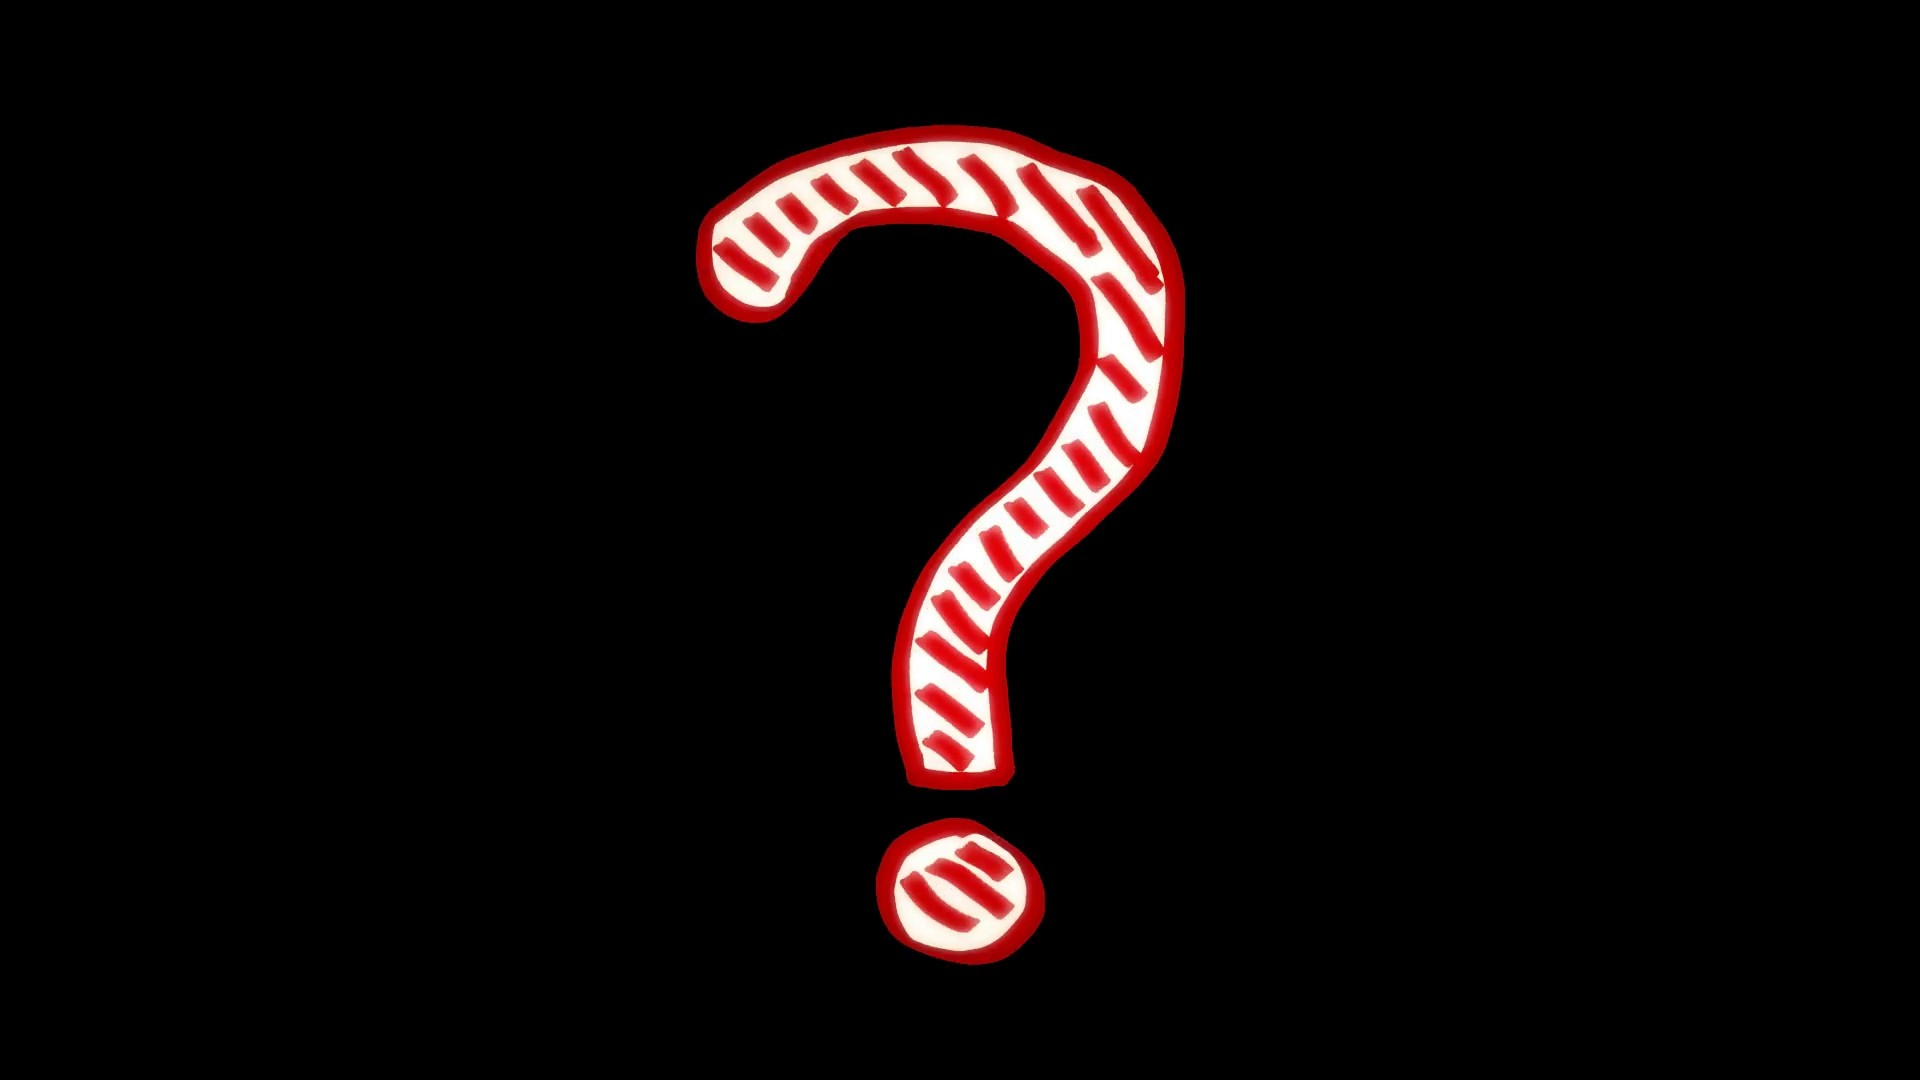 Question Mark Free Wallpaper and Background